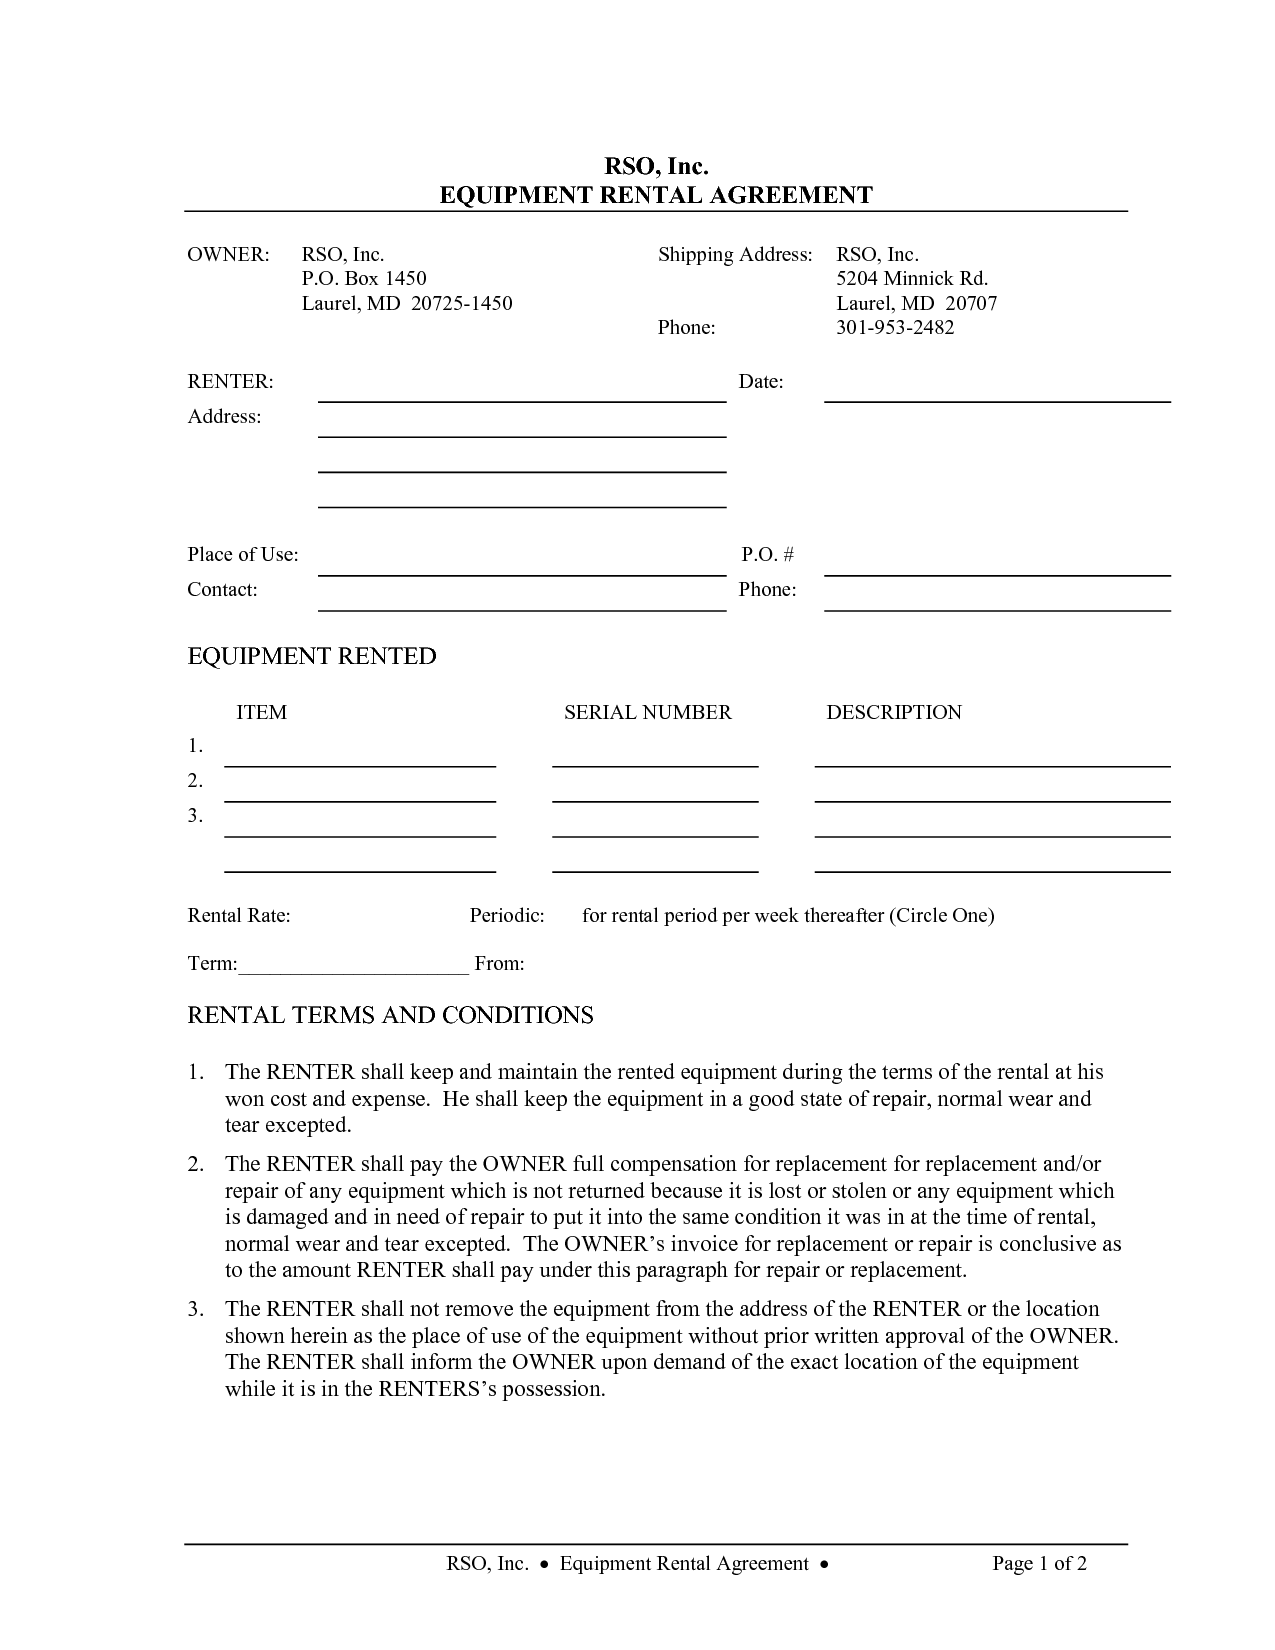 Equipment Rental Agreement Form Template   Swineflutrackingmap.com